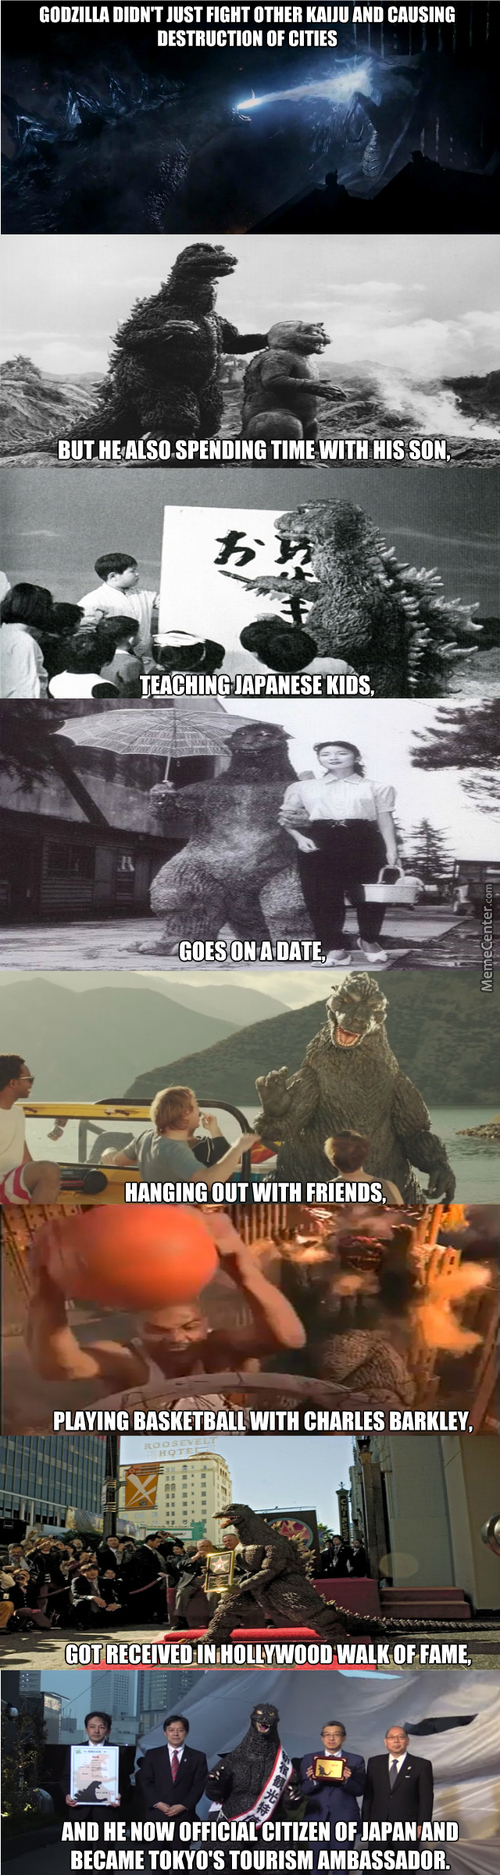 The Life And Times Of Godzilla (Long Post)